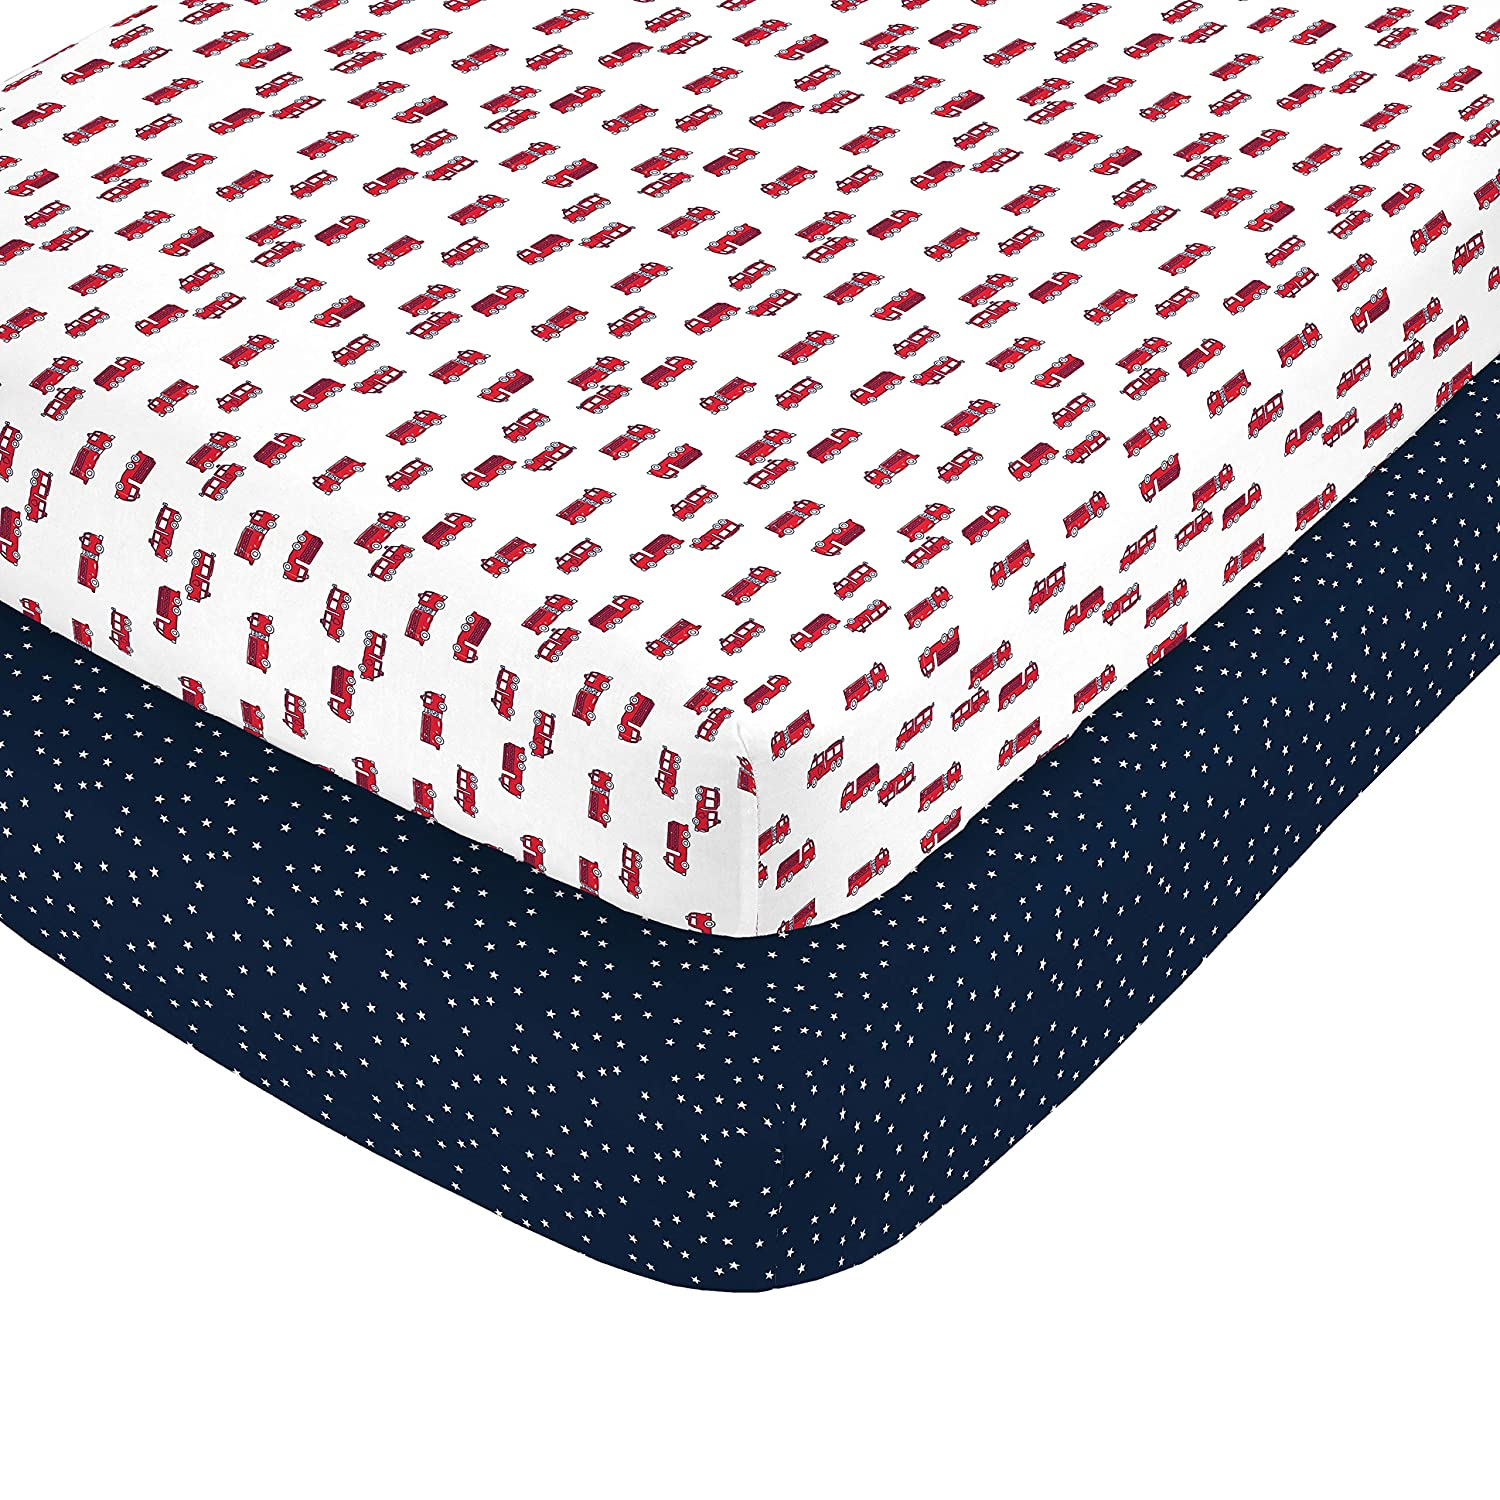 Carter's 100% Cotton Sateen 2 Piece Fitted Crib Sheets, Red/White/Navy